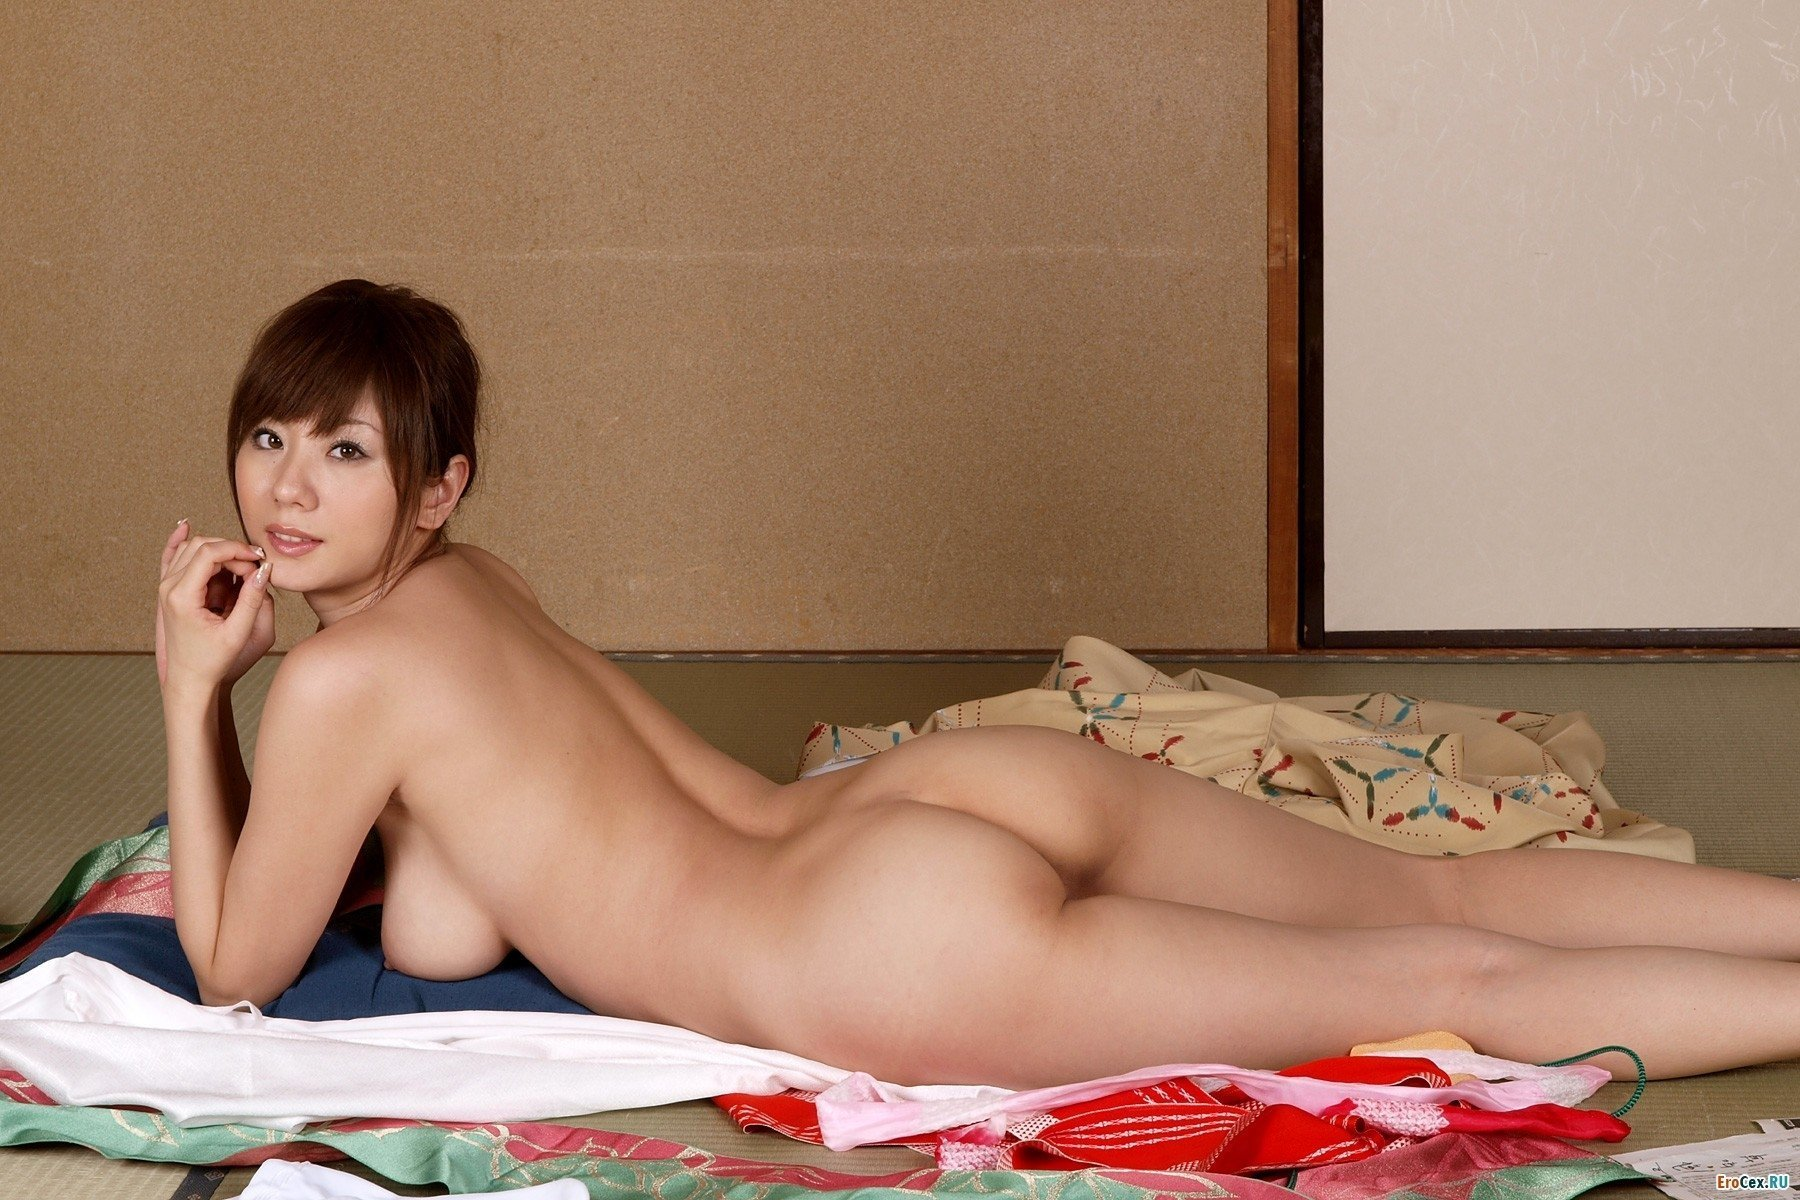 Free asian nude galleries 2